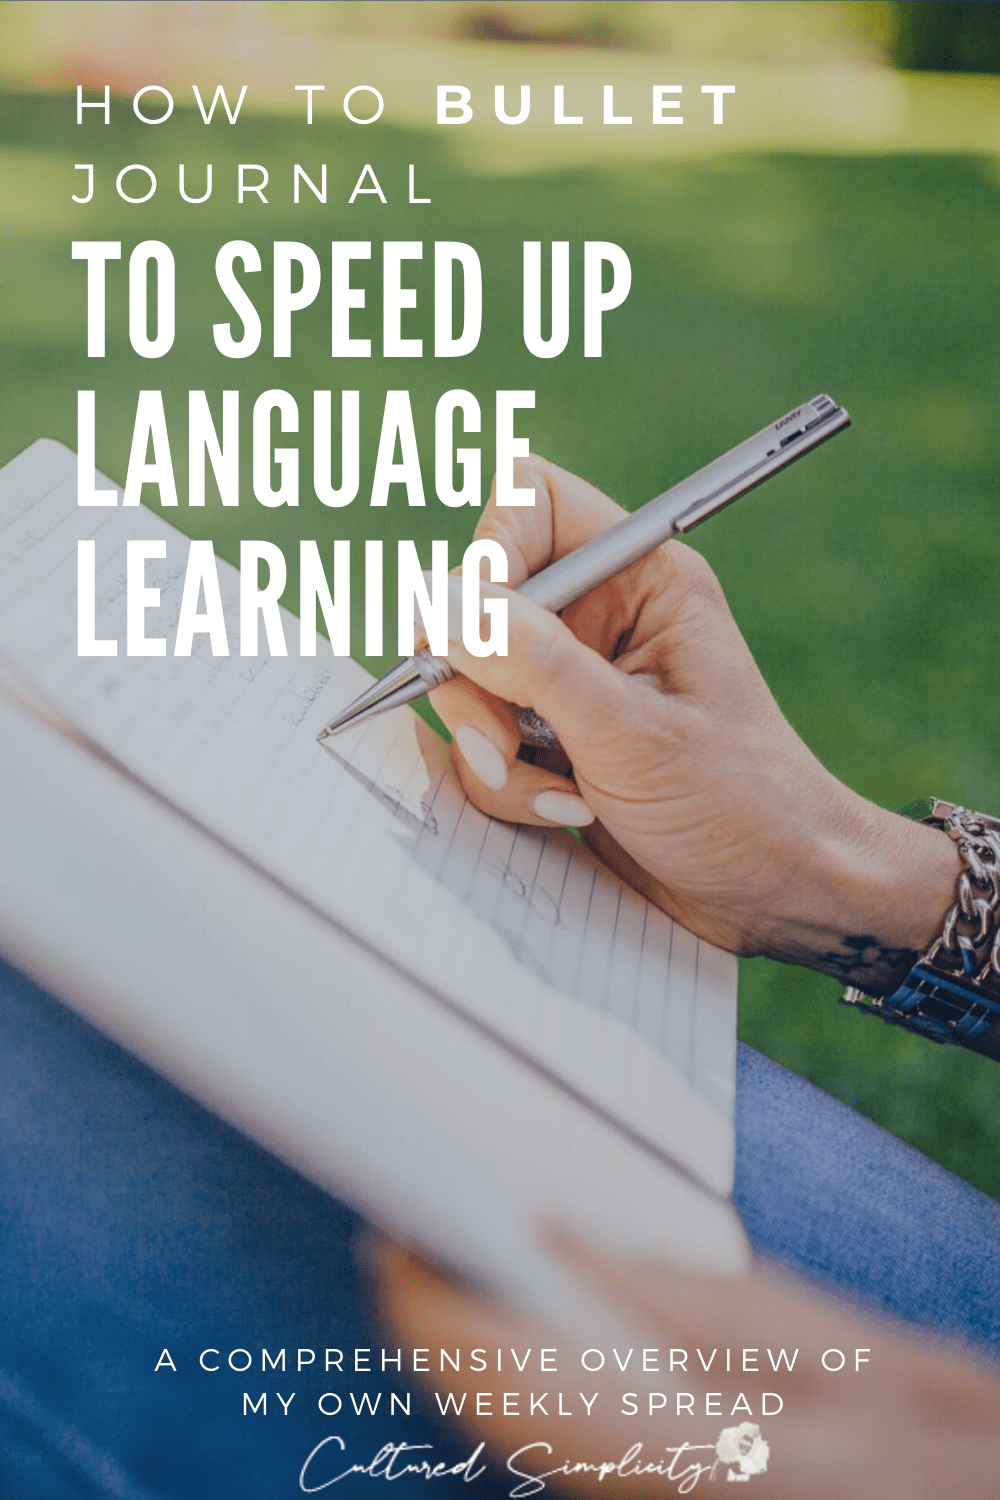 The Smart way to bullet journal to speed up language learning  (Self-Quarantine Edition)